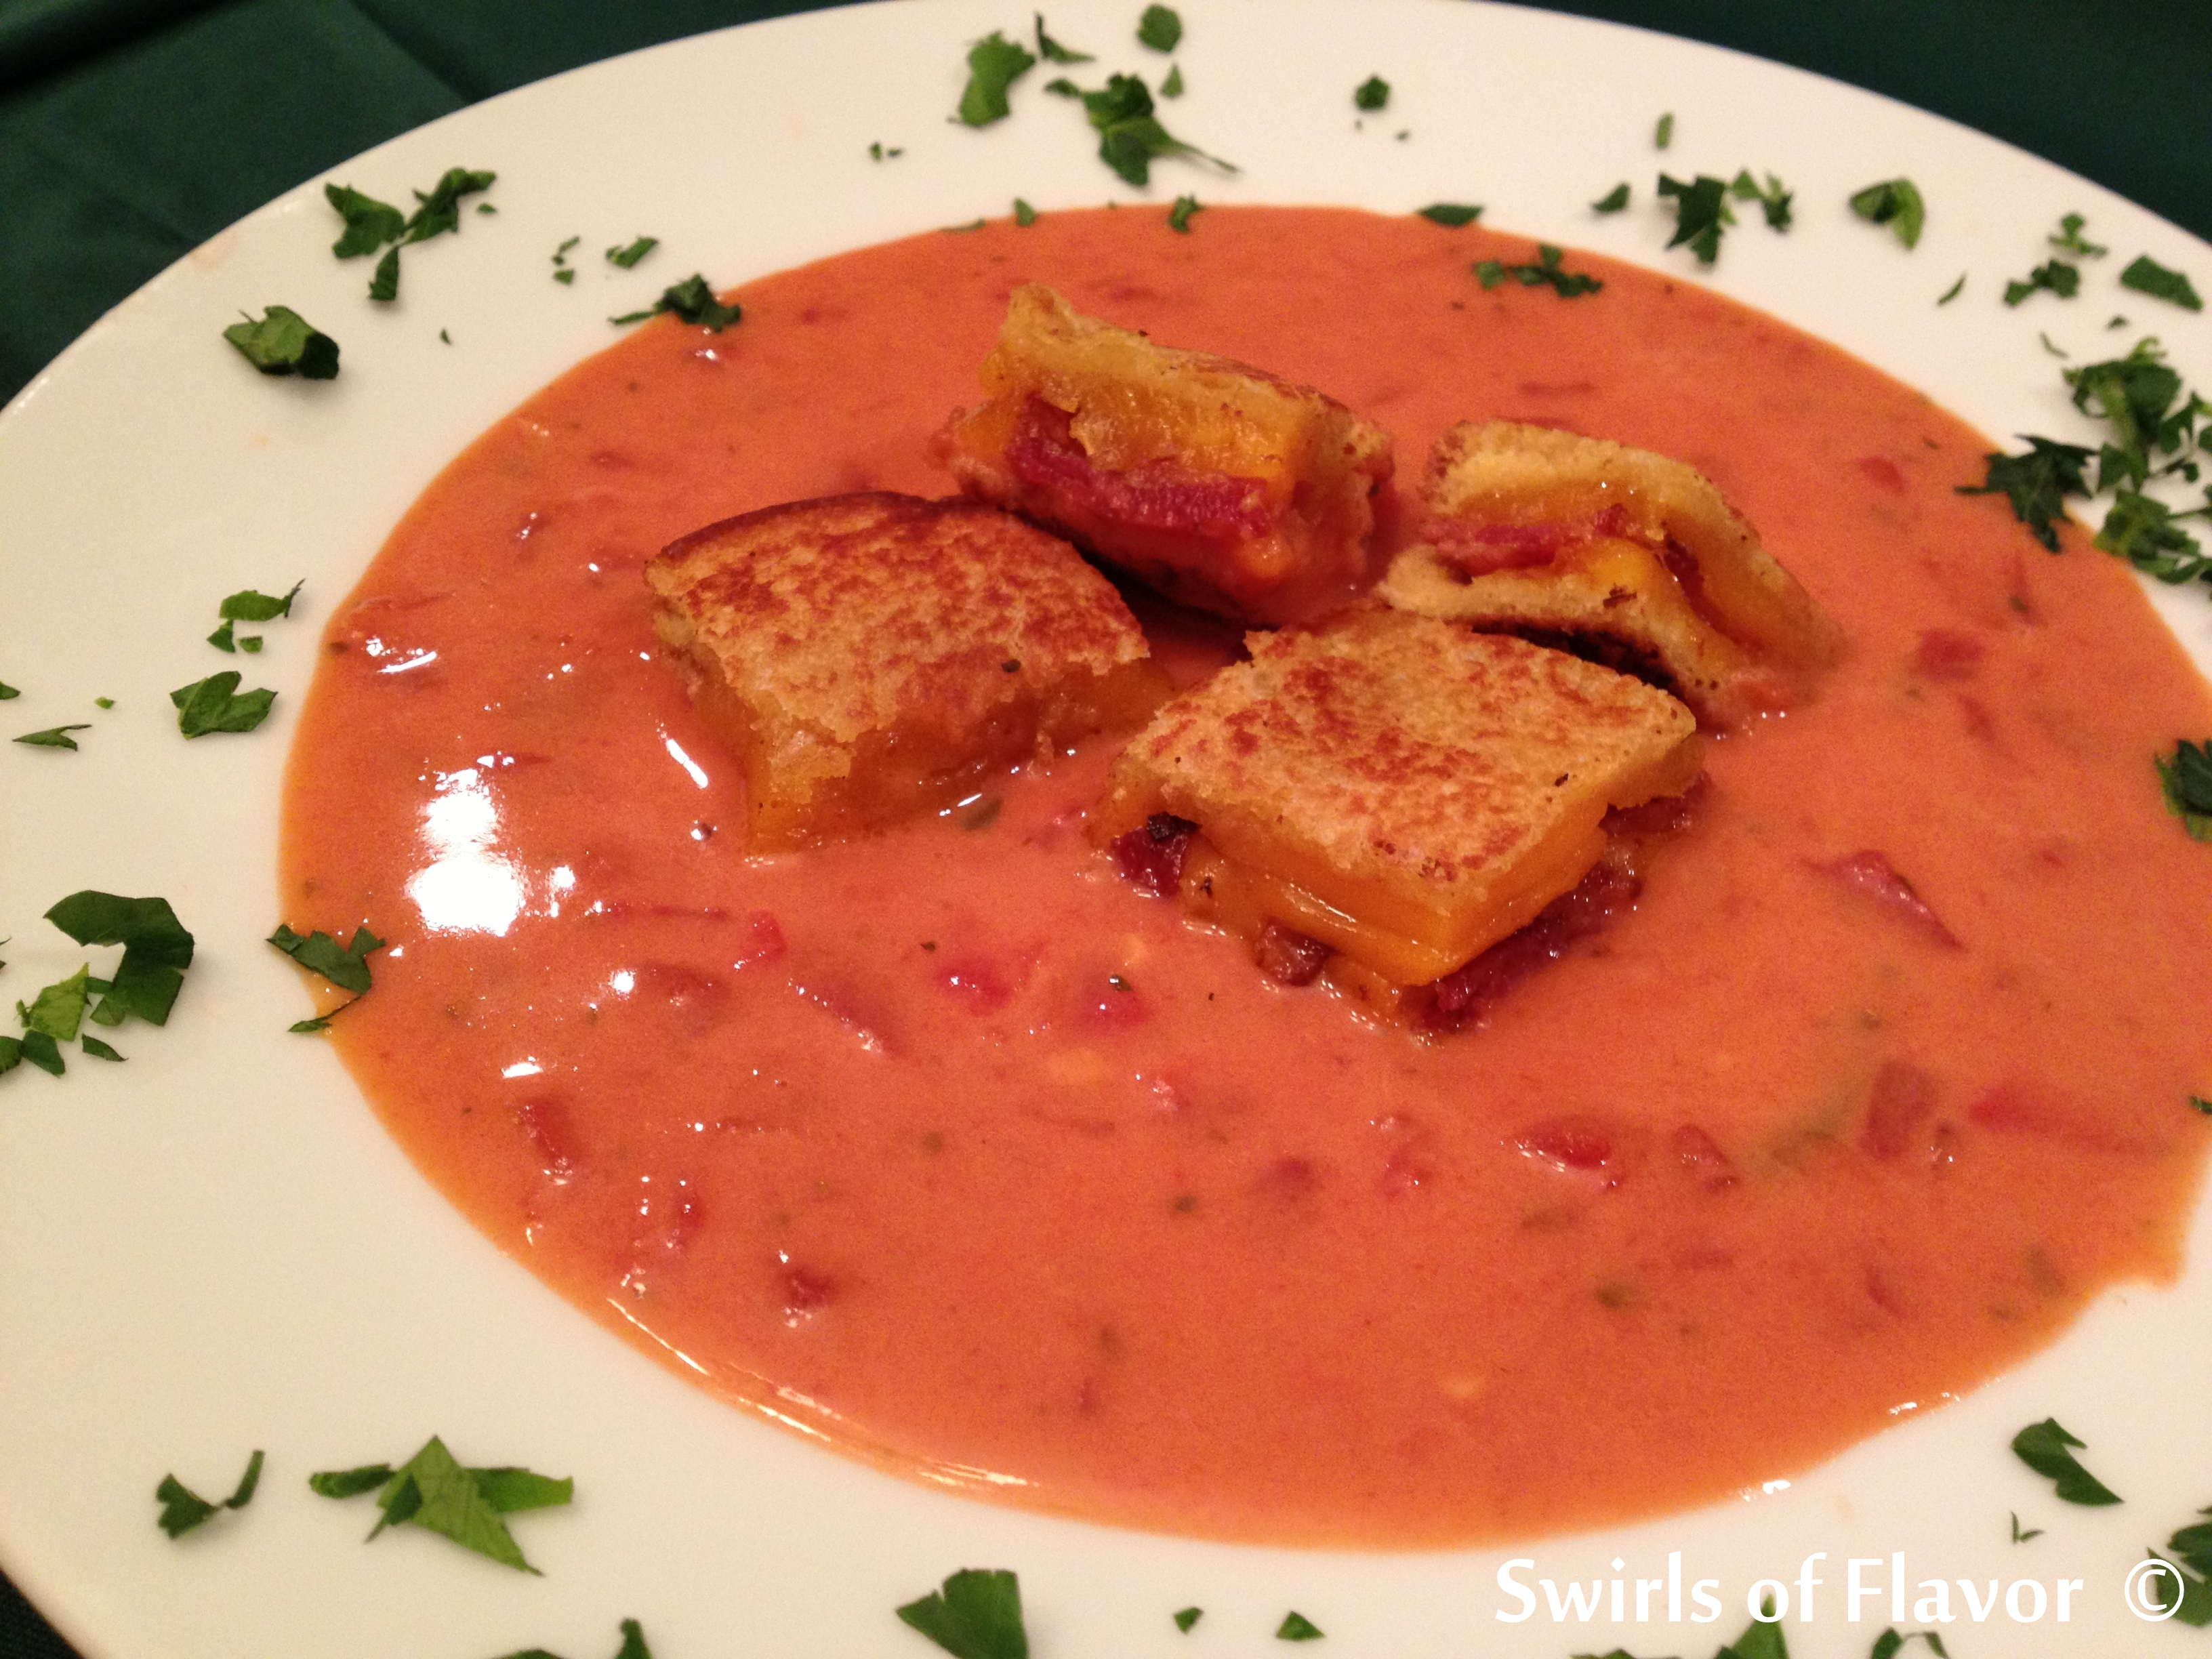 The classic Creamy Tomato Soup With Cheddar Bacon Grilled Cheese Croutons   simmers on your stove top and will warm you up on a chilly fall day topped with grilled cheese croutons of crispy bacon, sharp cheddar cheese and potato bread.